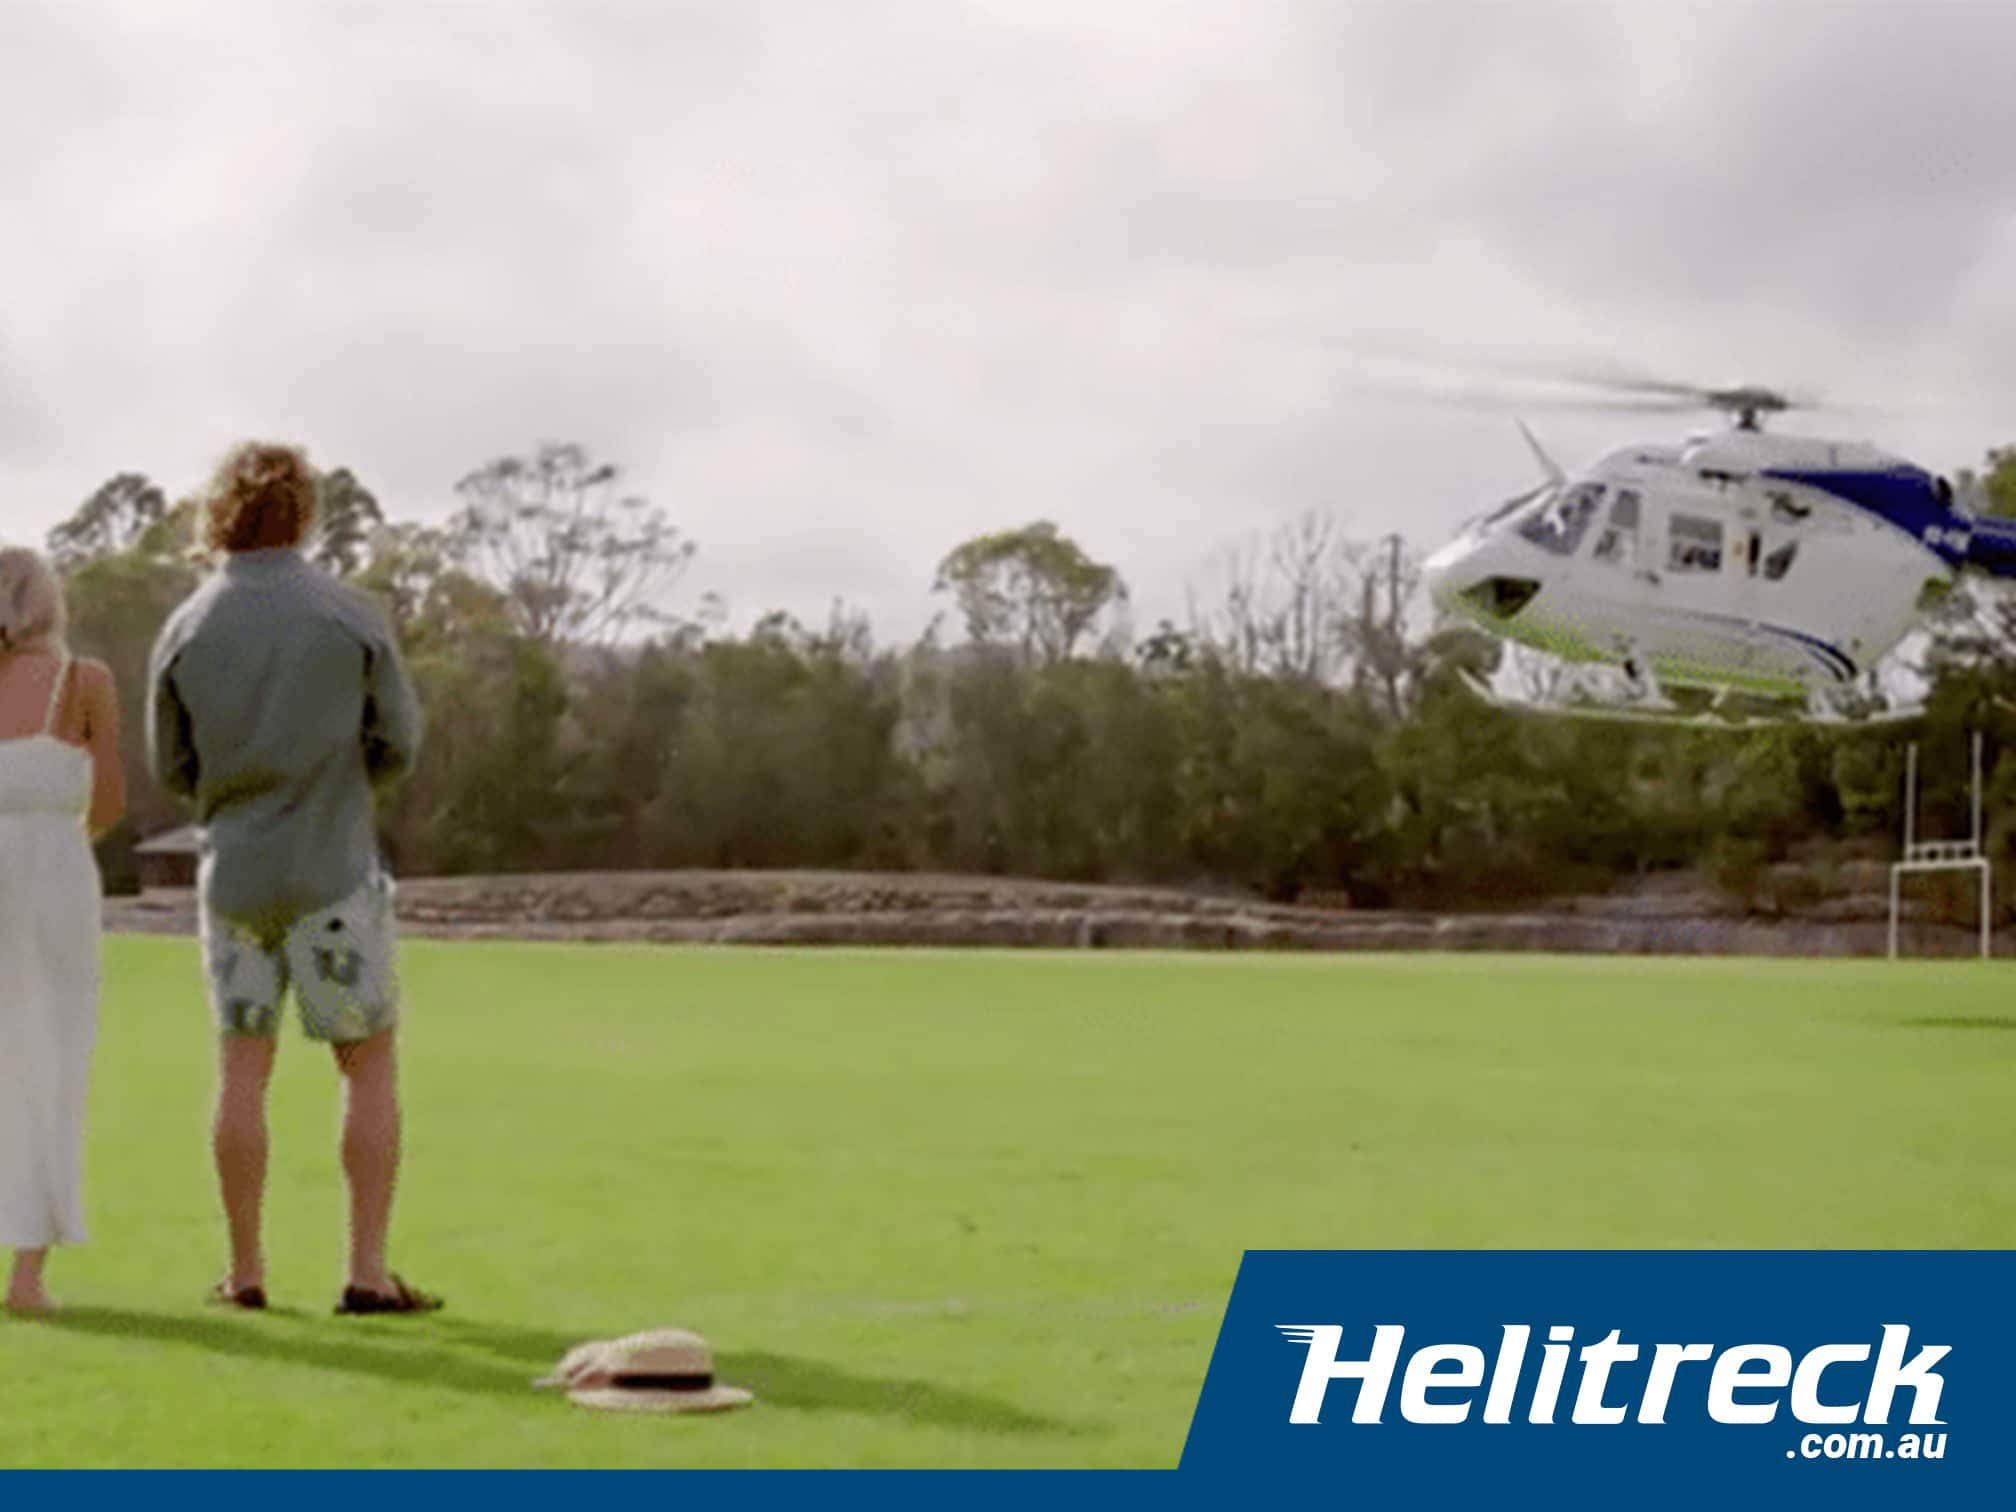 helitreck the bachelor sydney helicopter tv show